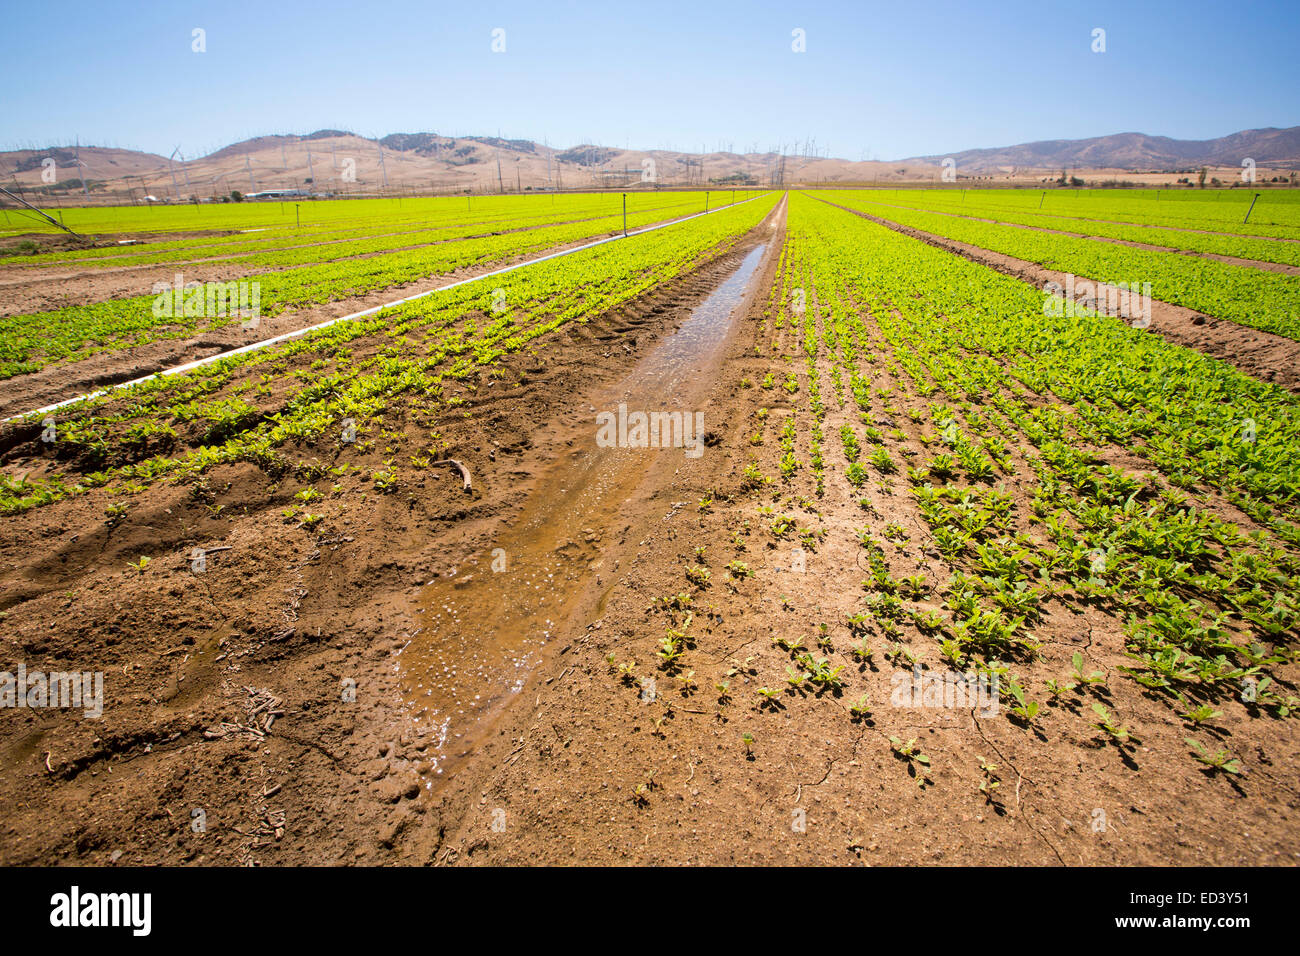 Crops being irrigated below the Tehachapi Pass wind farm, the first large scale wind farm area developed in the - Stock Image